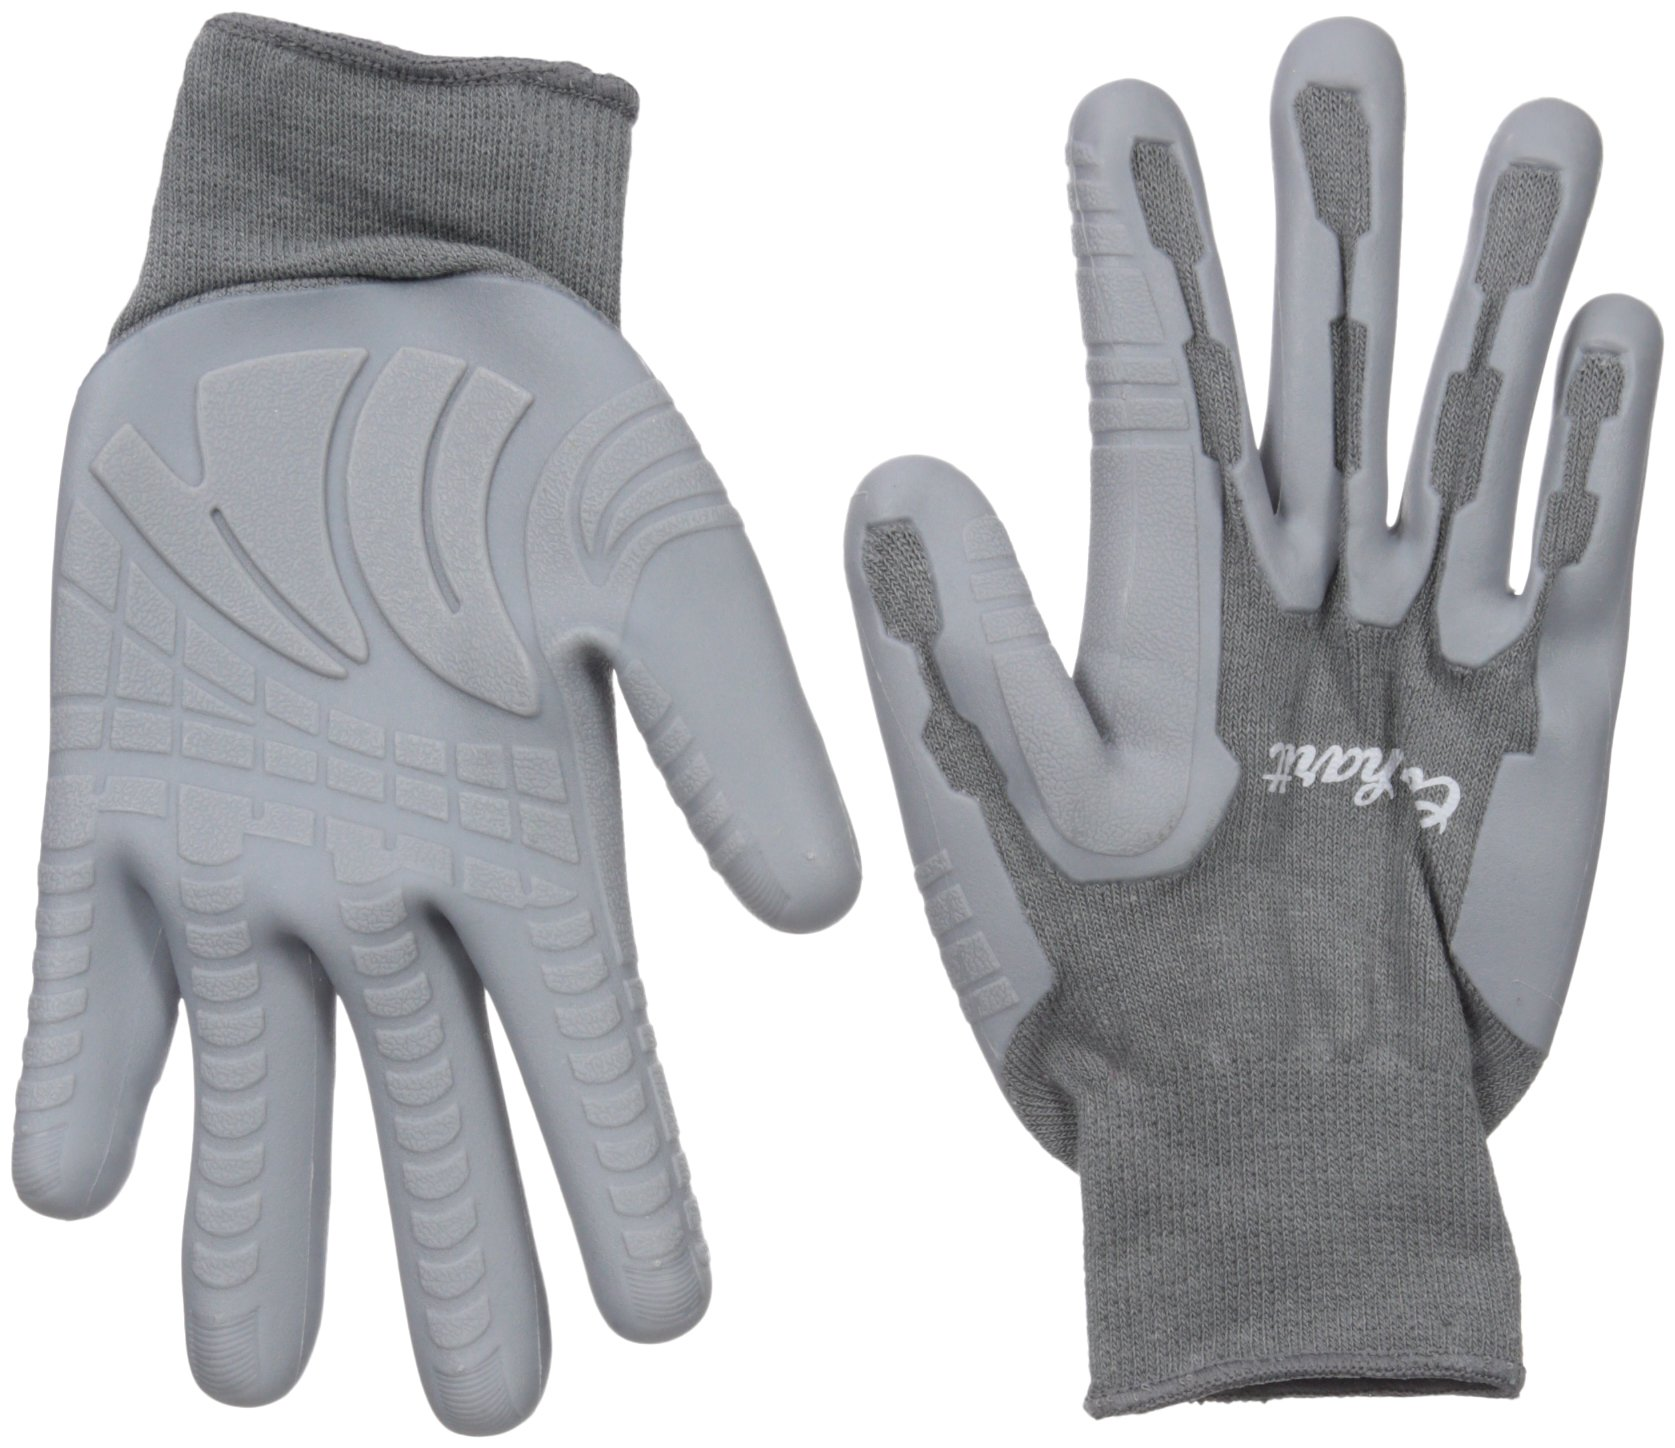 Carhartt Women's Durable Pro Palm Work Glove With Extreme Grip, Grey, S